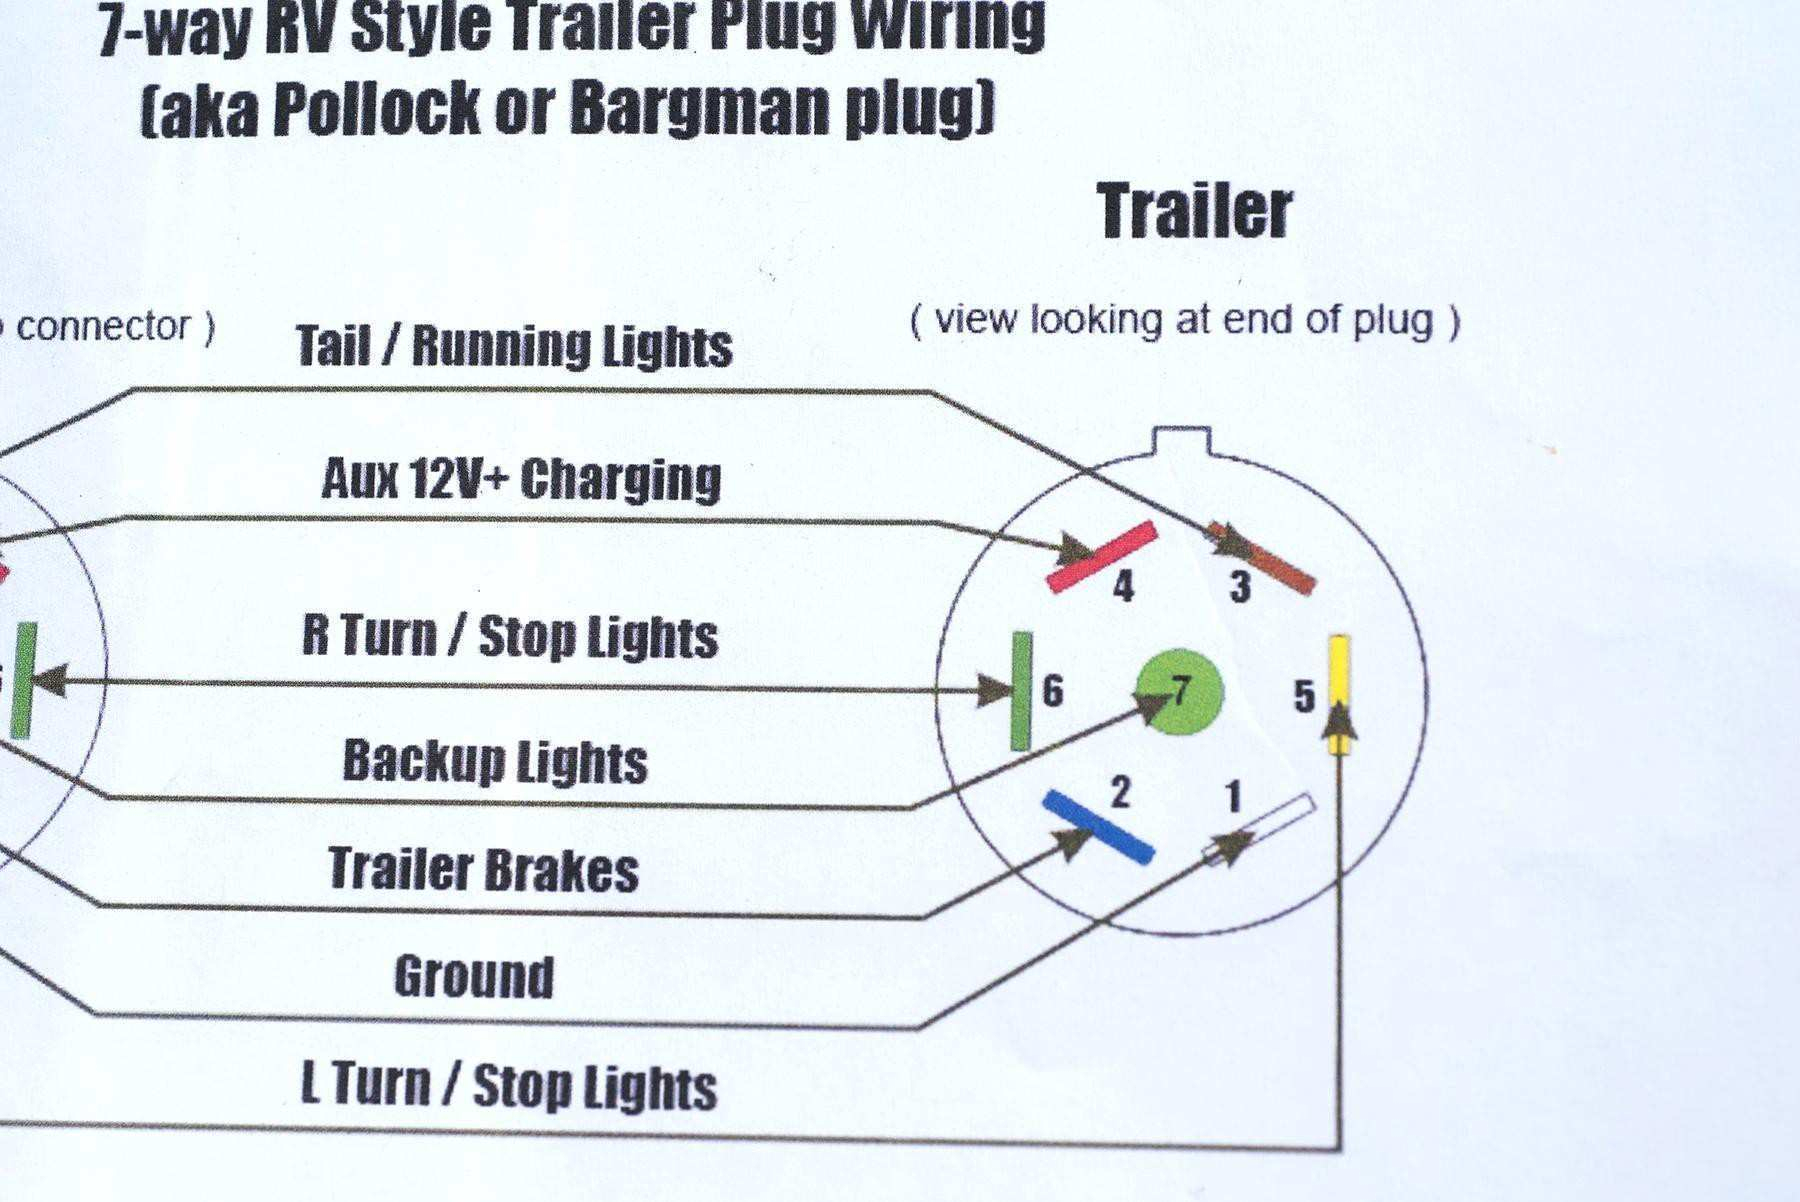 4 Way Trailer Wiring Diagram Ford | Wiring Diagram - 4 Way Connector Trailer Wiring Diagram